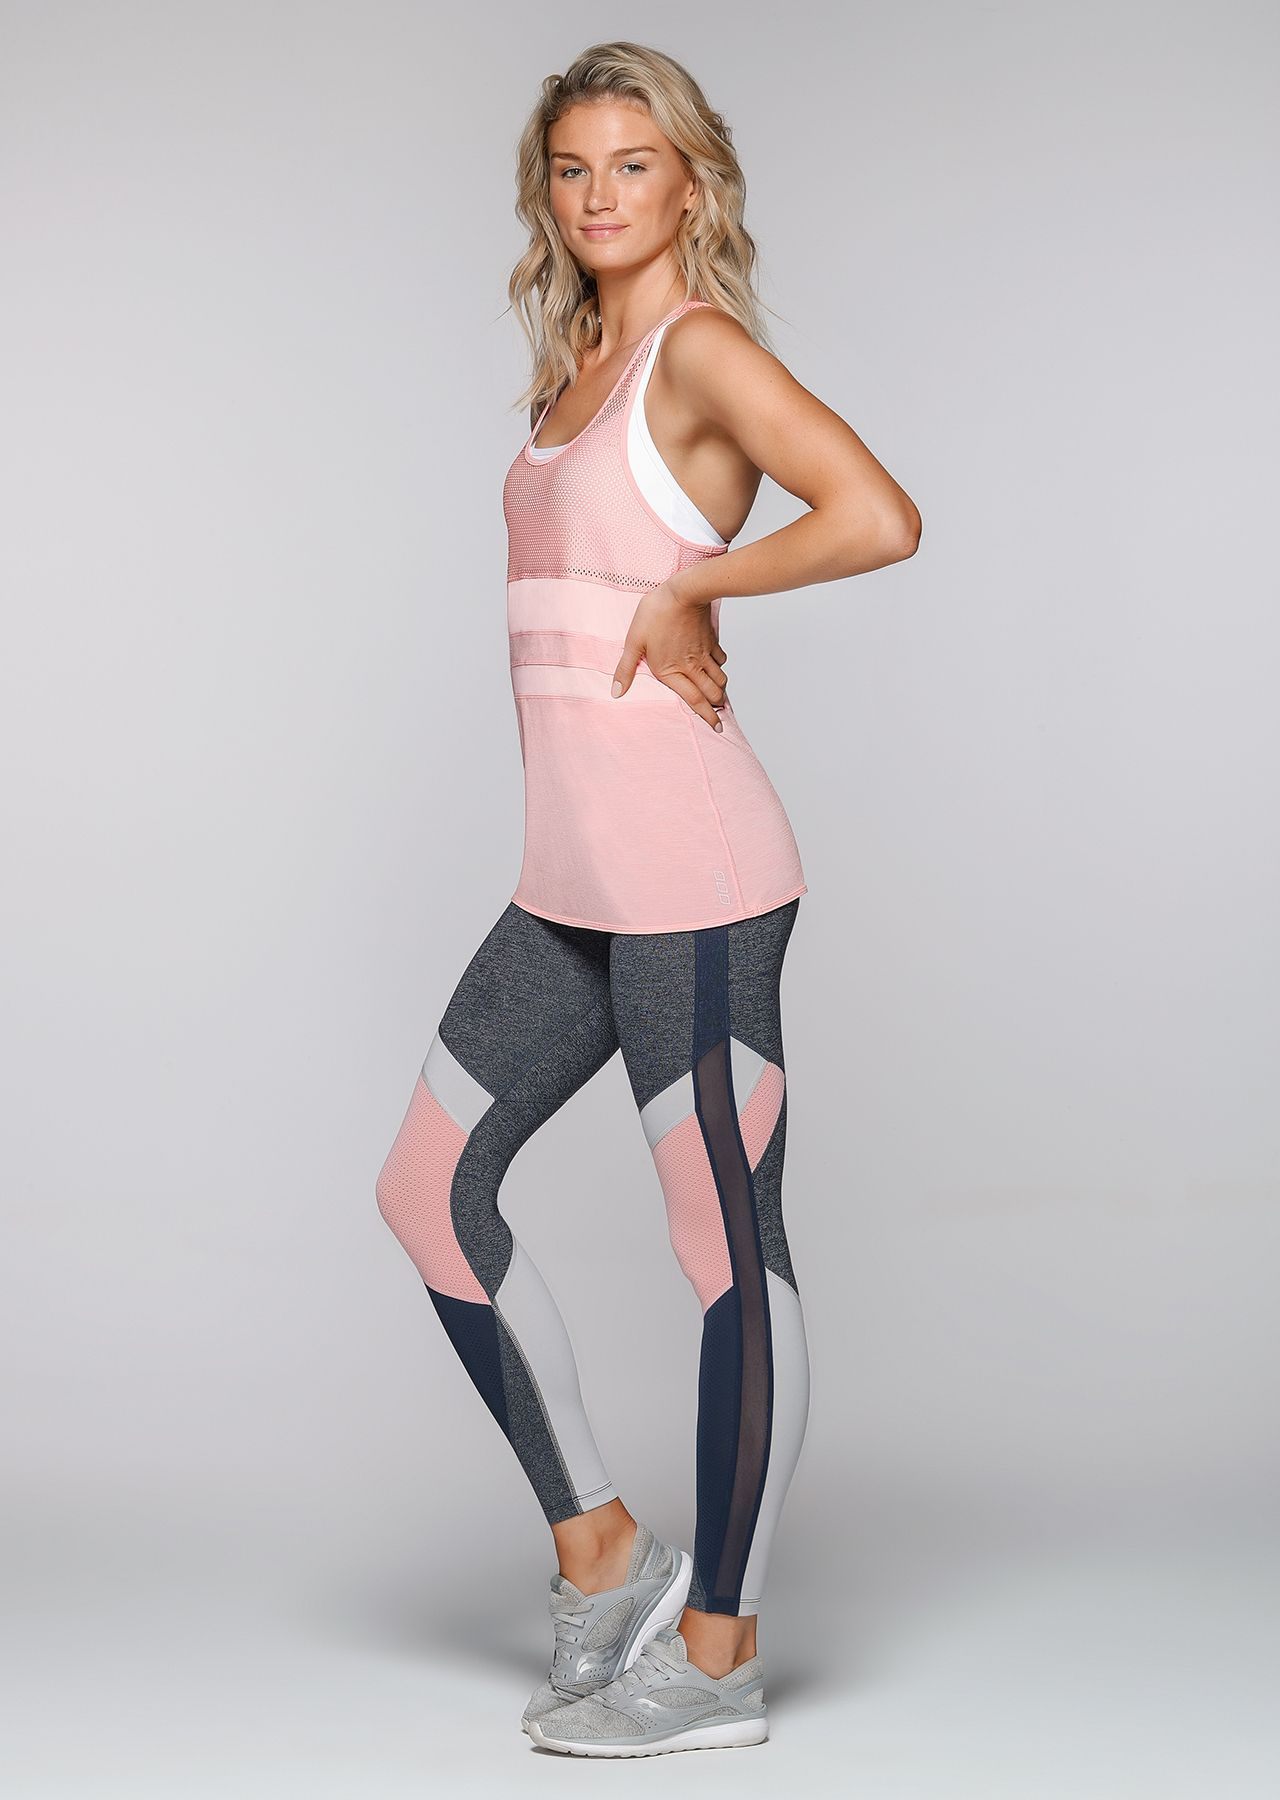 Fitness Apparel Stop And Read This Article If You Need Help With Fitness Continue With The